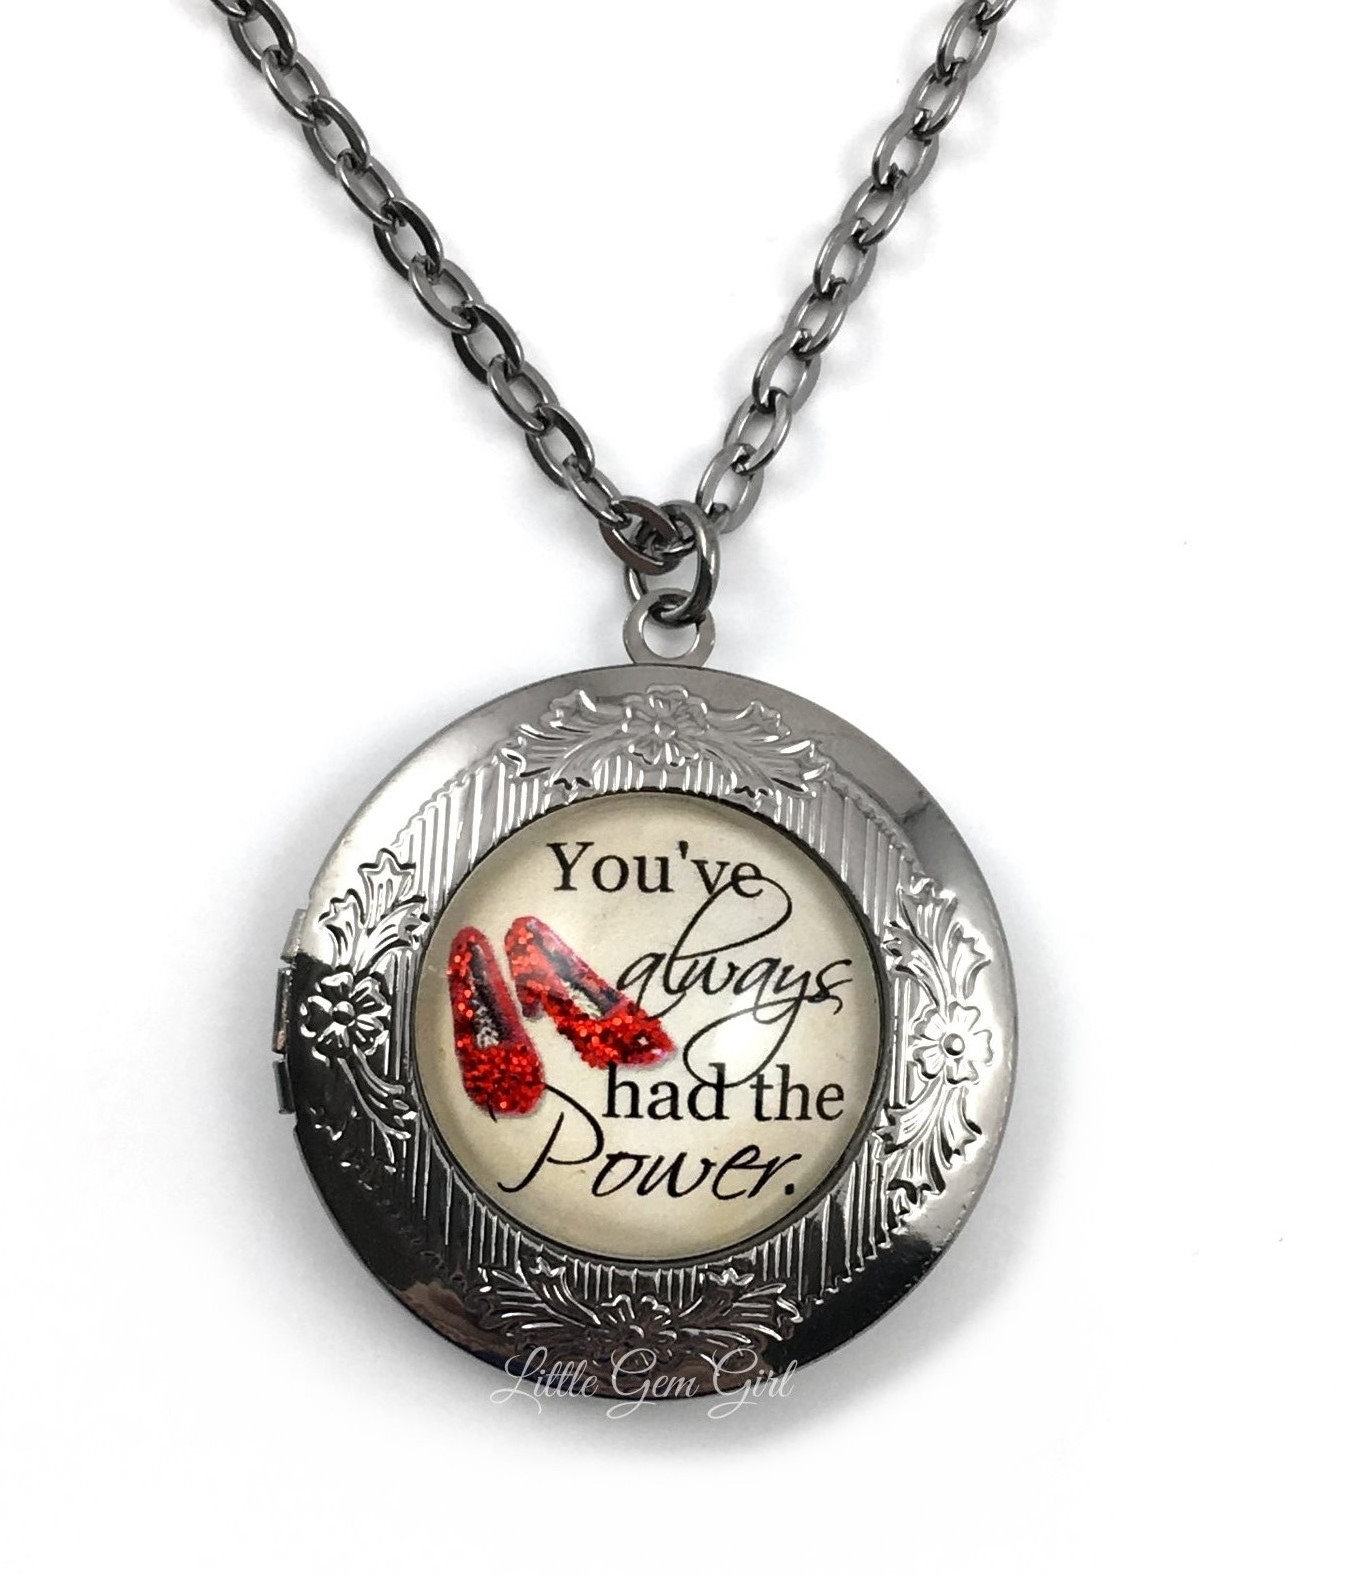 2c9ef439a7 Wizard of Oz Locket You've Always had the Power Necklace - Ruby Slipper  Locket - Motivational Quote Jewelry - Oz Photo Locket